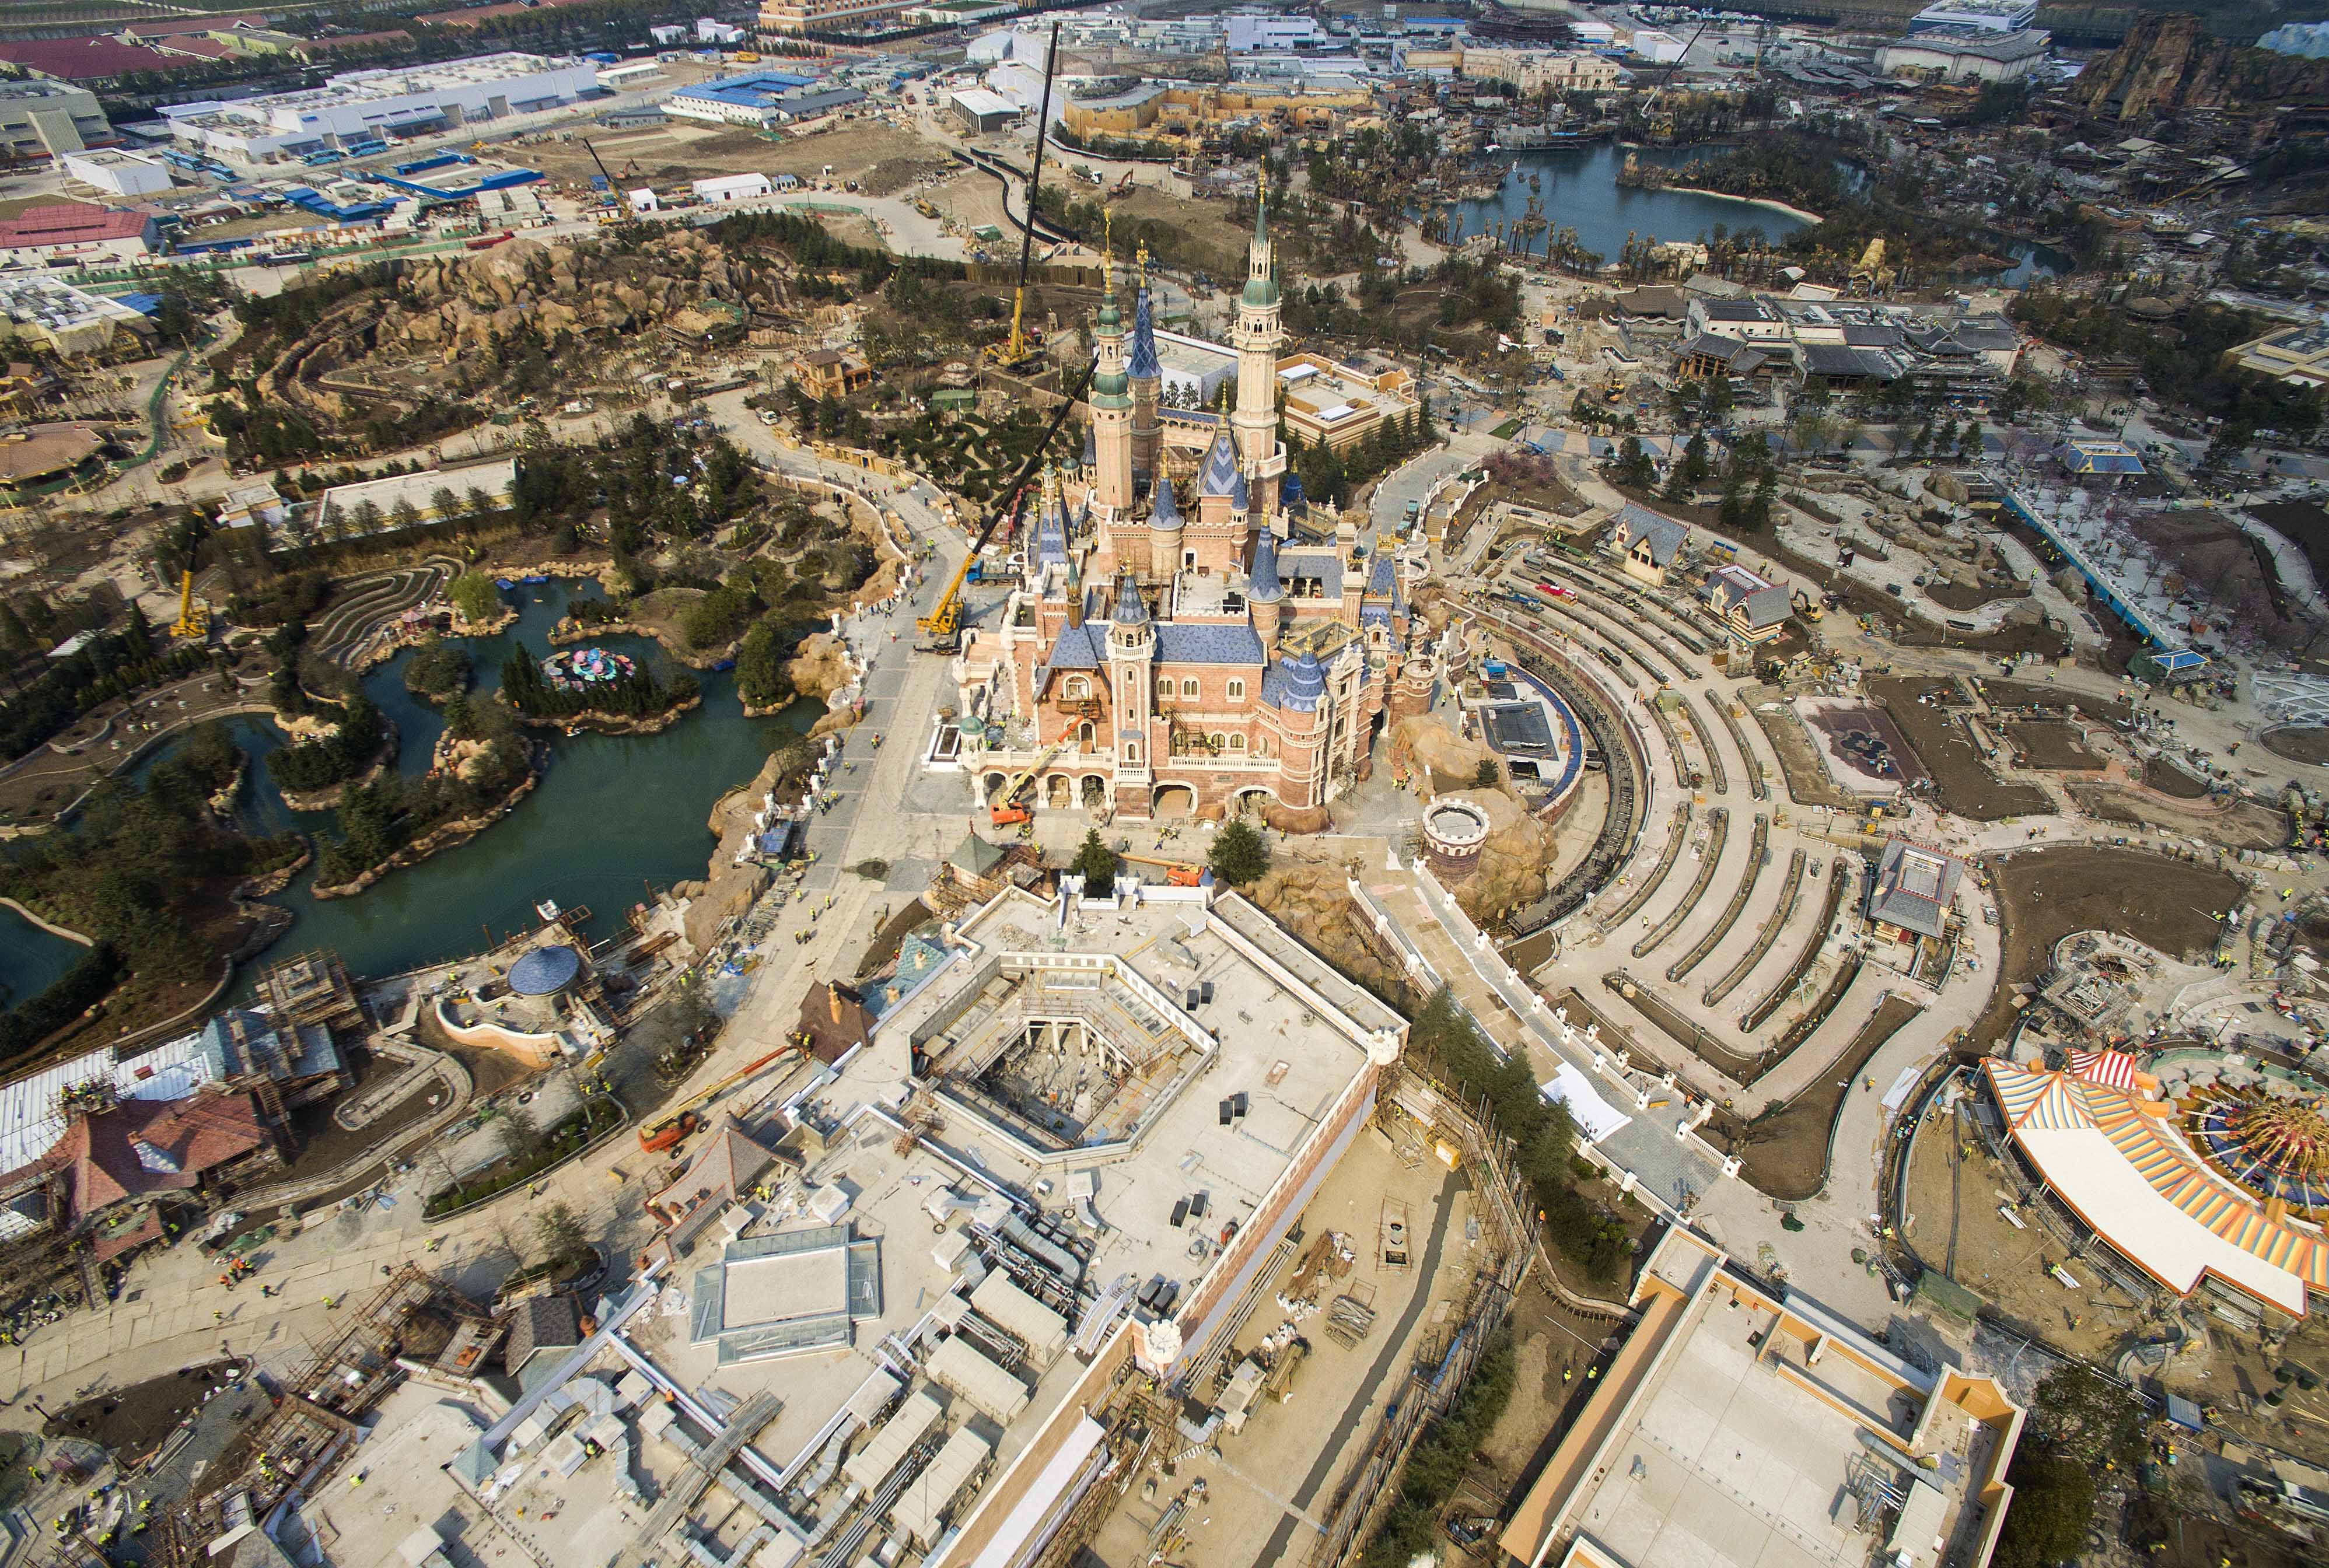 SHANGHAI, CHINA - MARCH 27: (CHINA OUT) Aerial view of the Shanghai Disneyland Park under construction on March 27, 2016 in Shanghai, China. Shanghai Disneyland Park sold ticket from Monday and would open on June 16. (Photo by VCG)***_***